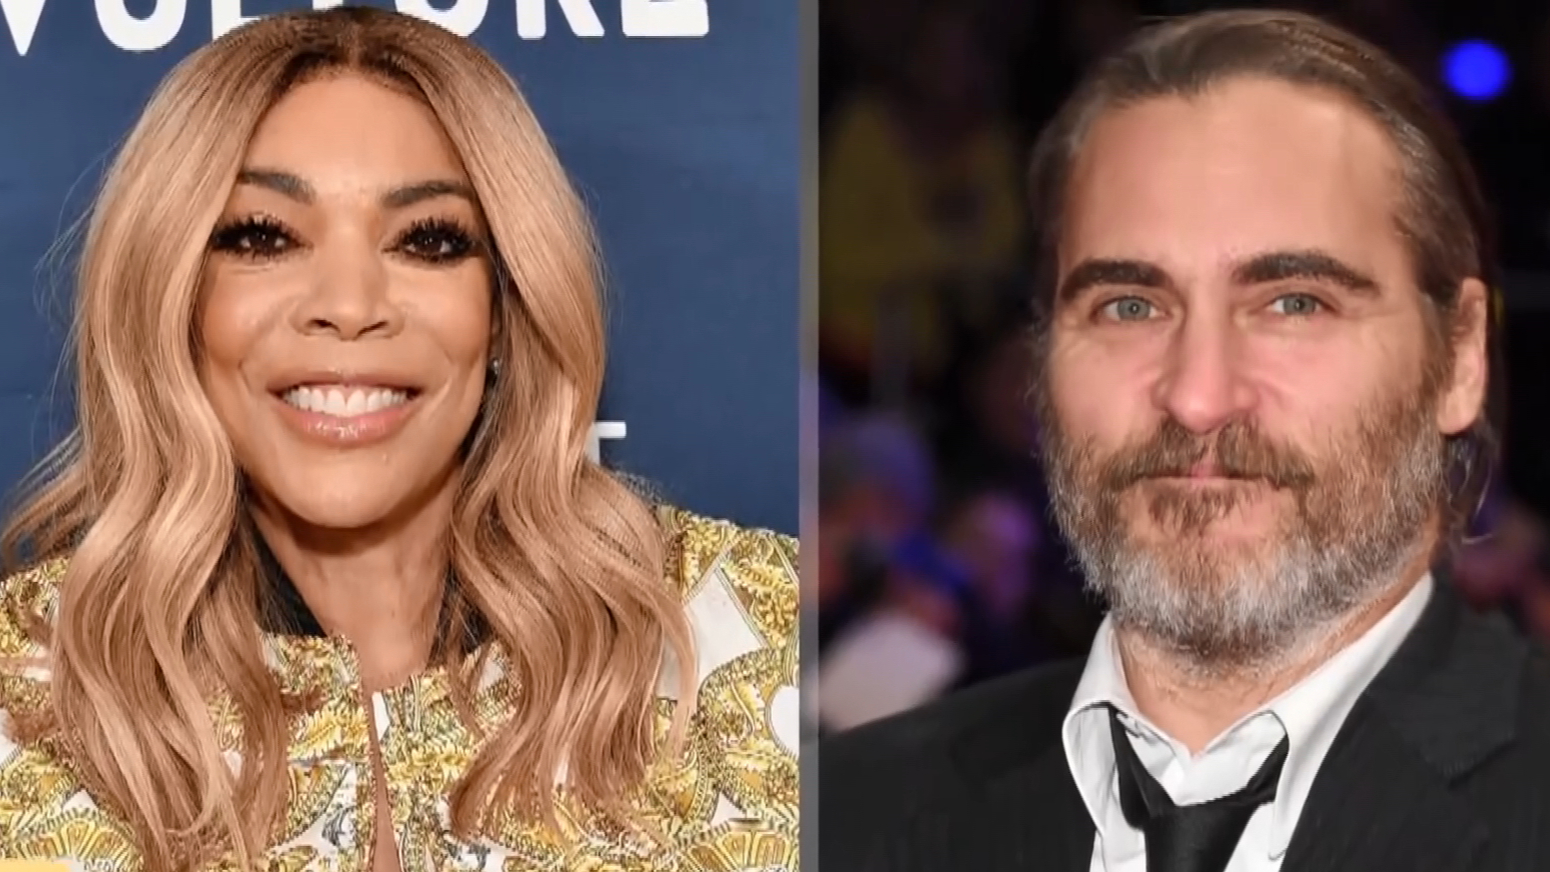 Wendy Williams apologises for Joaquin Phoenix 'cleft lip' comments